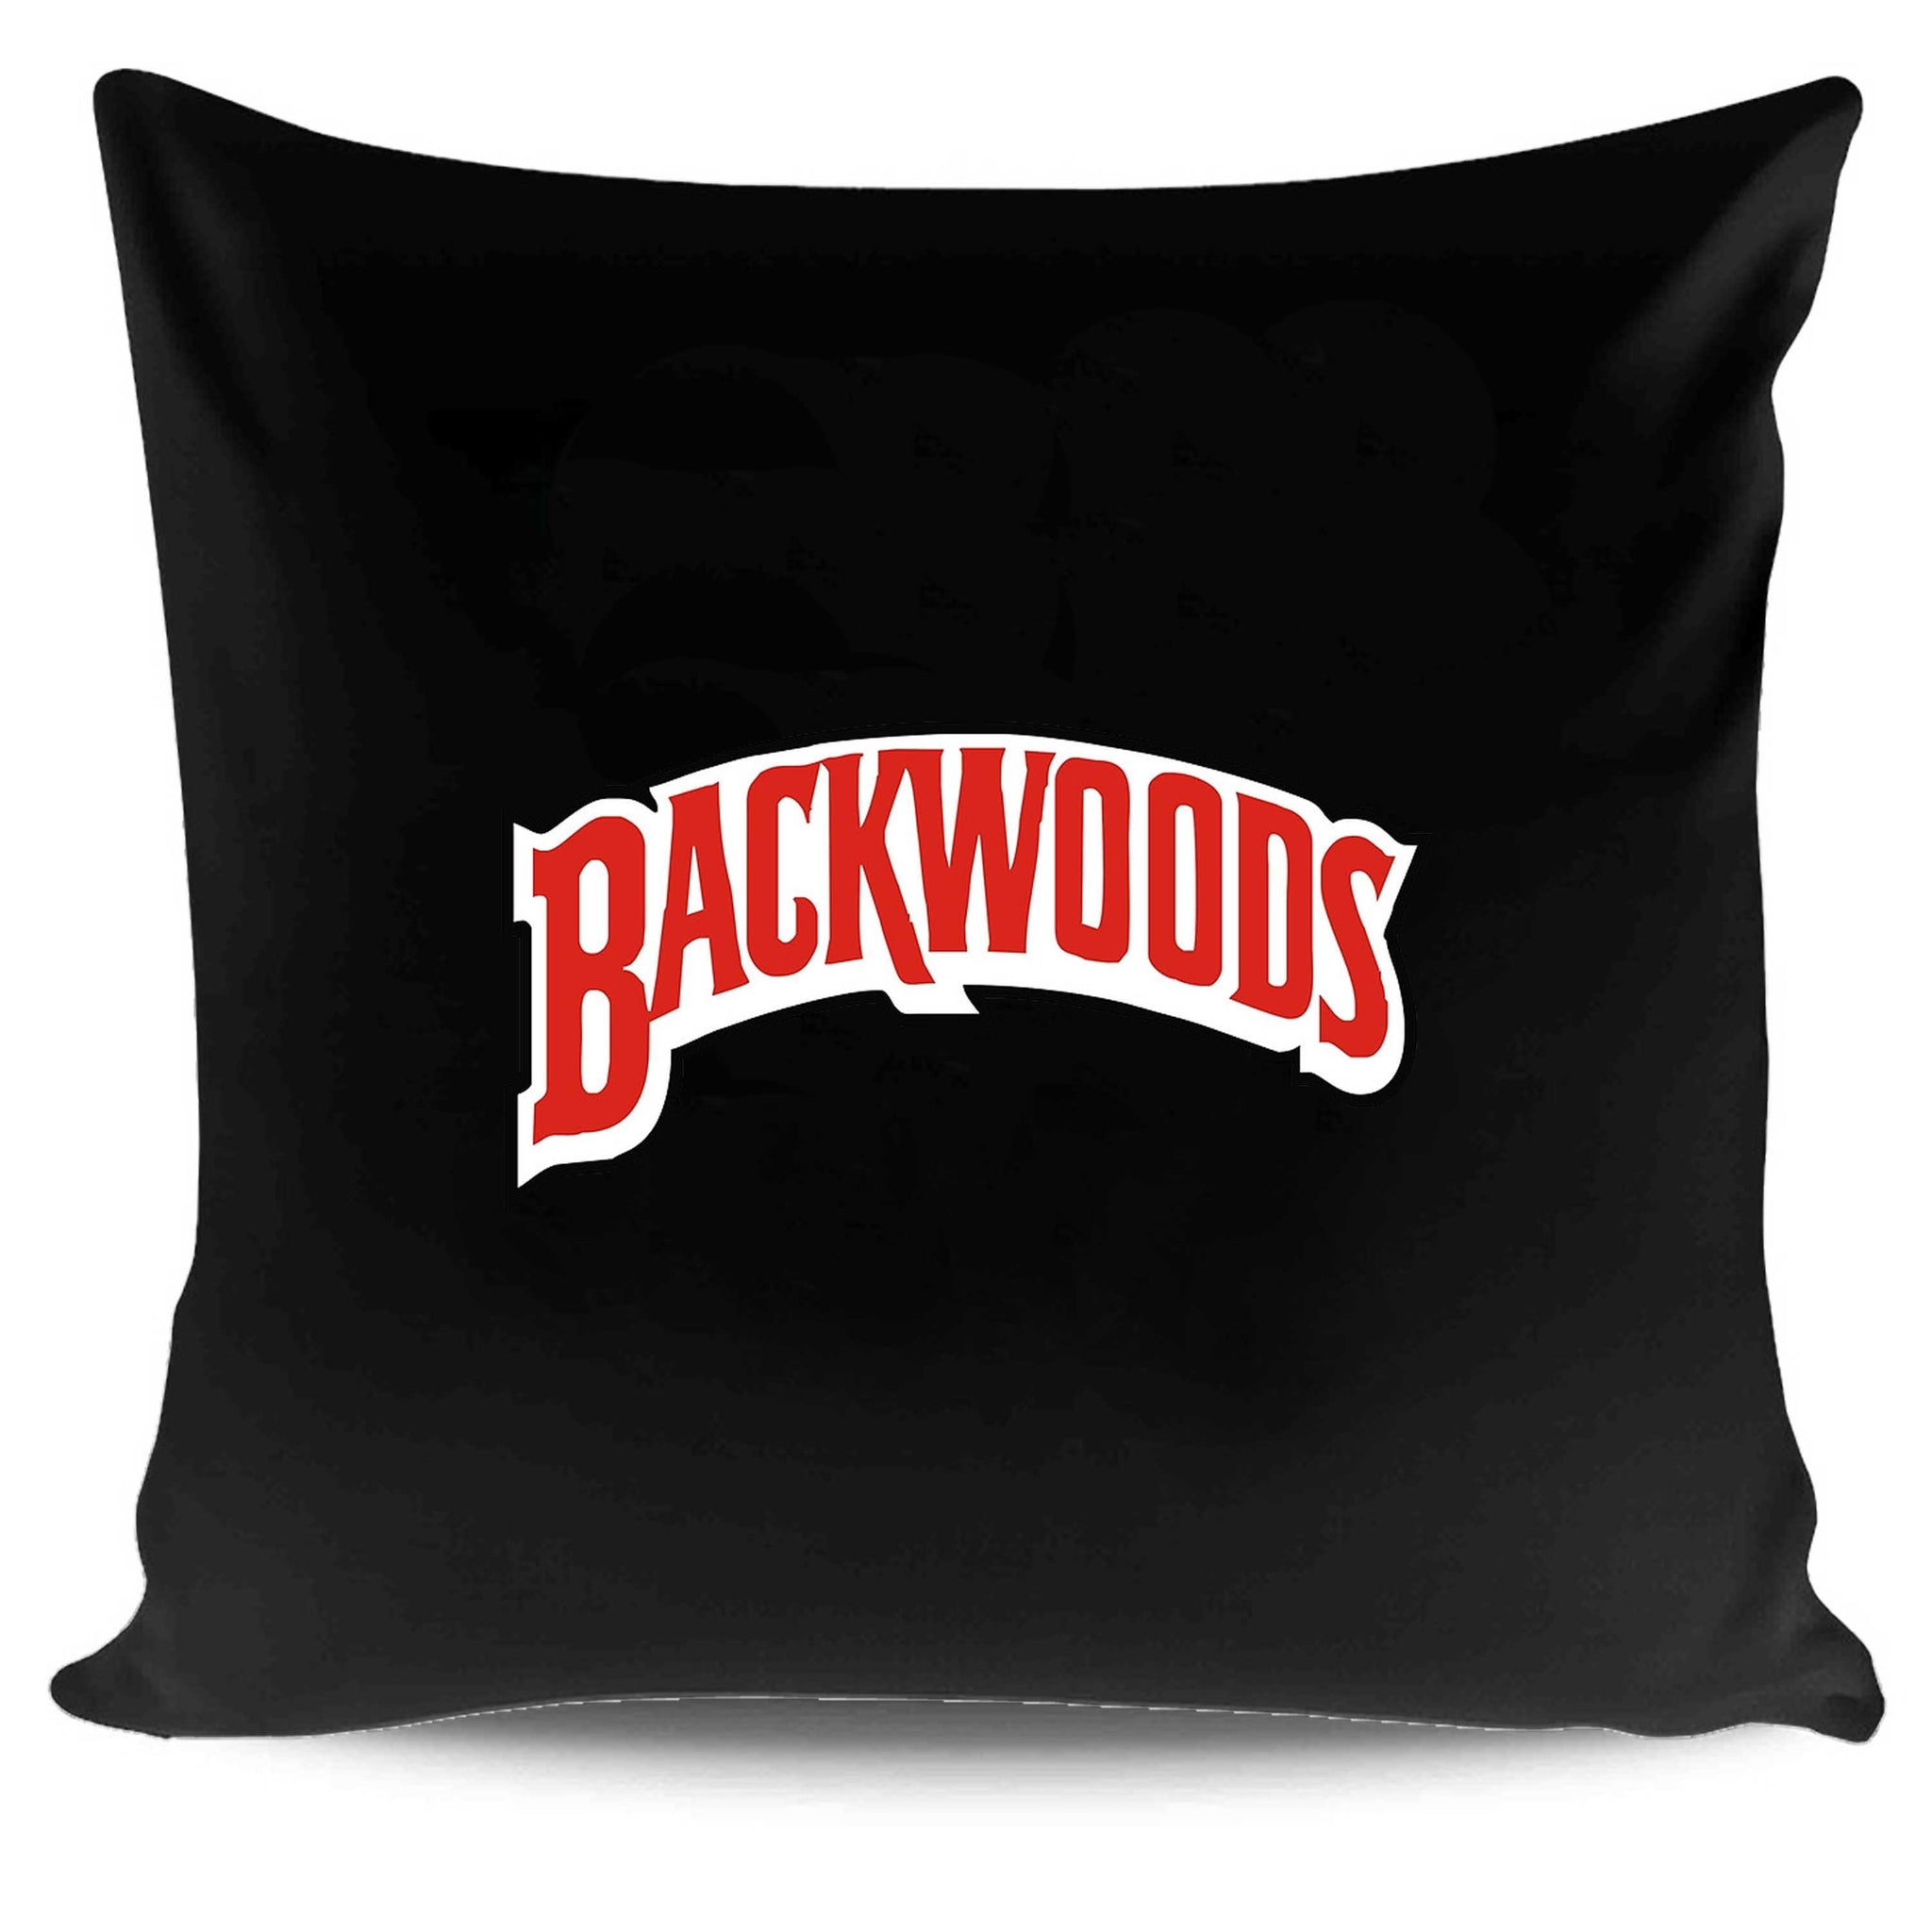 Backwoods Marijuana Rapper Pillow Case Cover